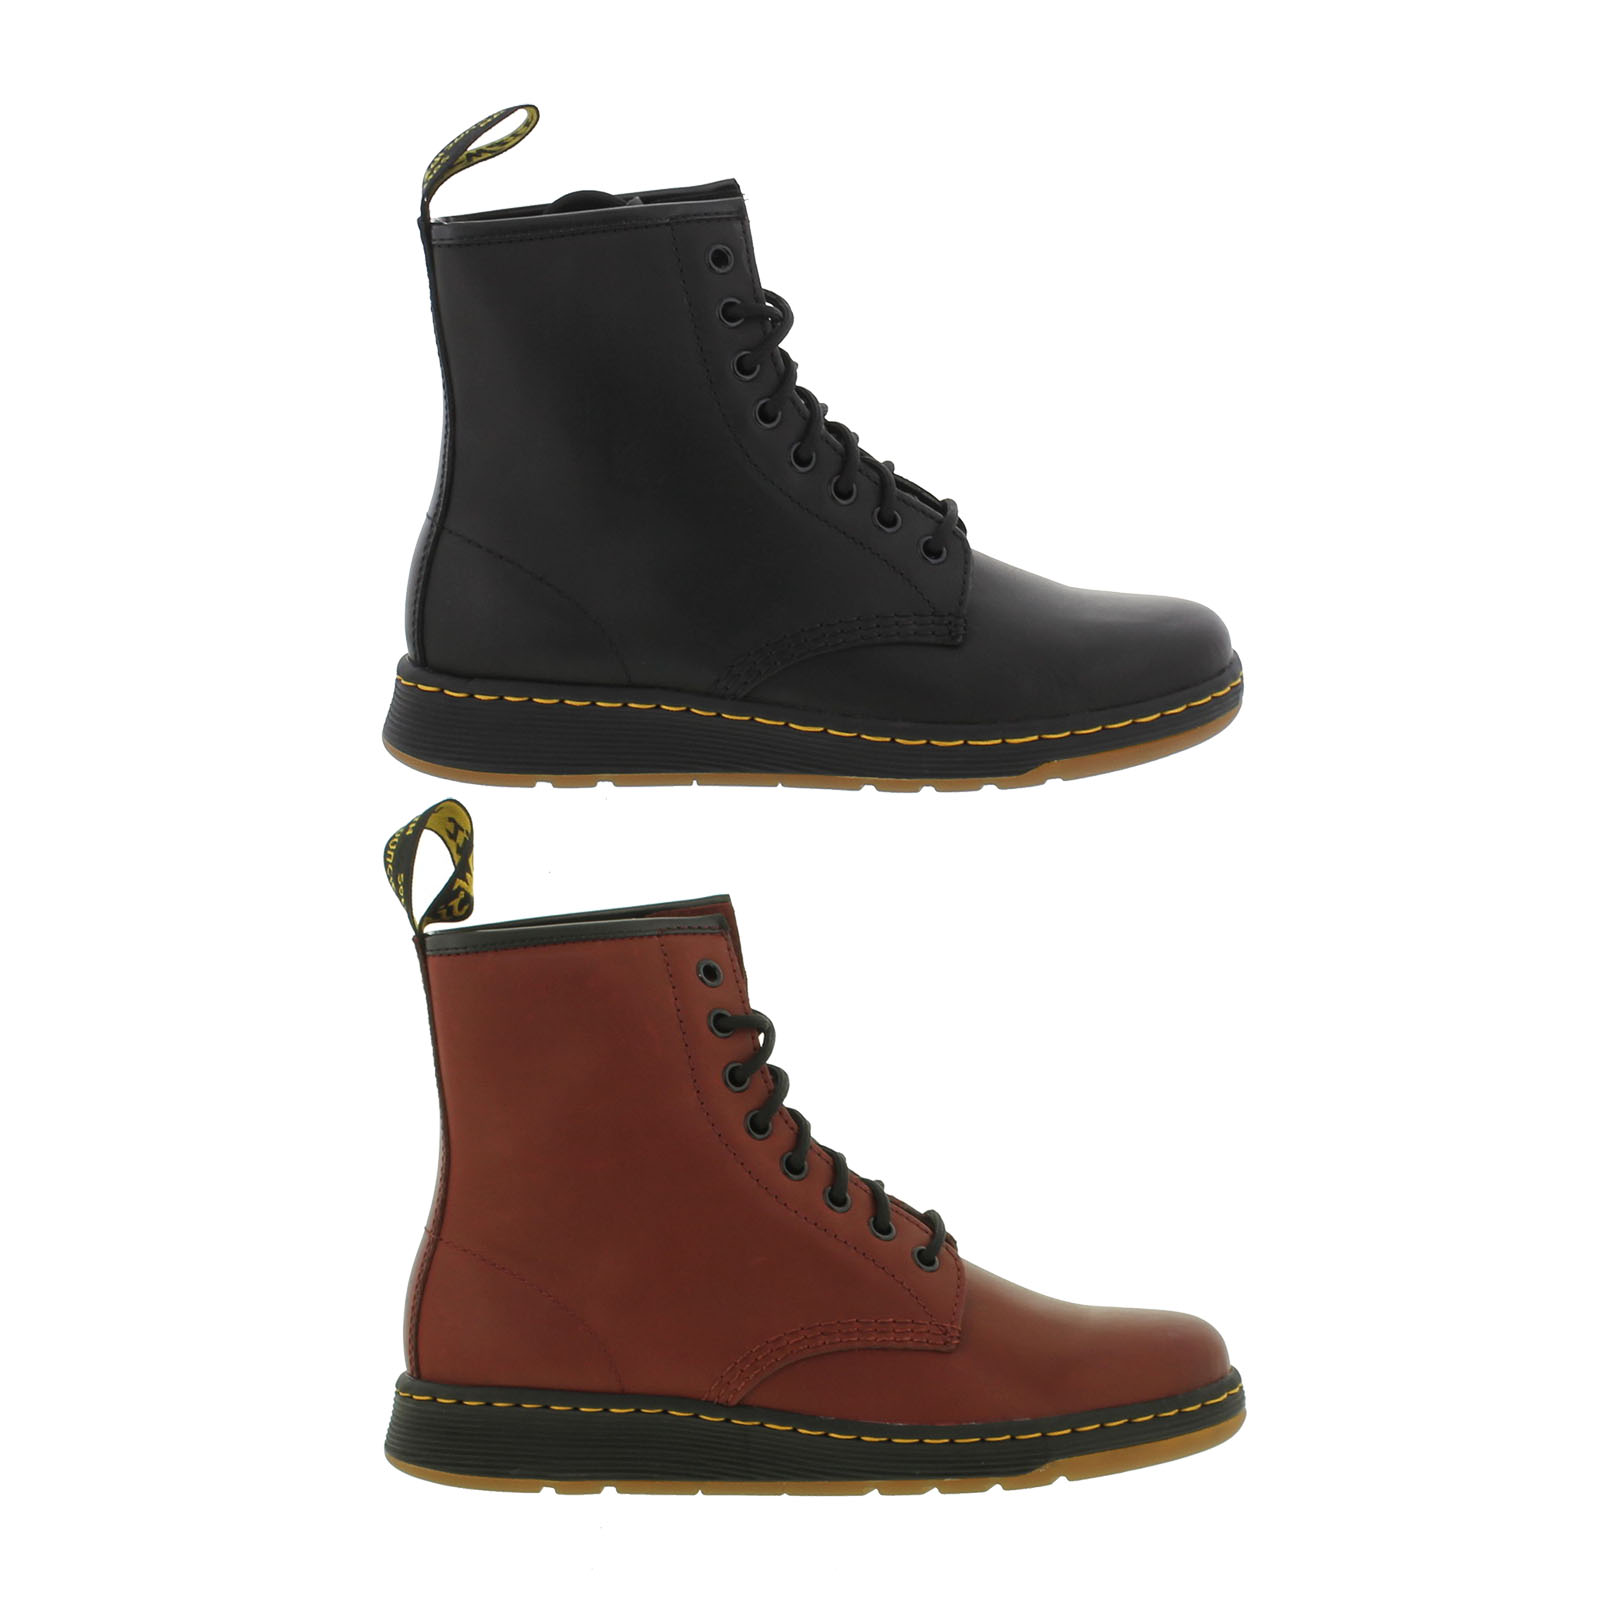 Dr. Martens Newton Lite Temperley Leather 8-Eye Boots - Cherry Red - UK 3 7Ij15eJWh